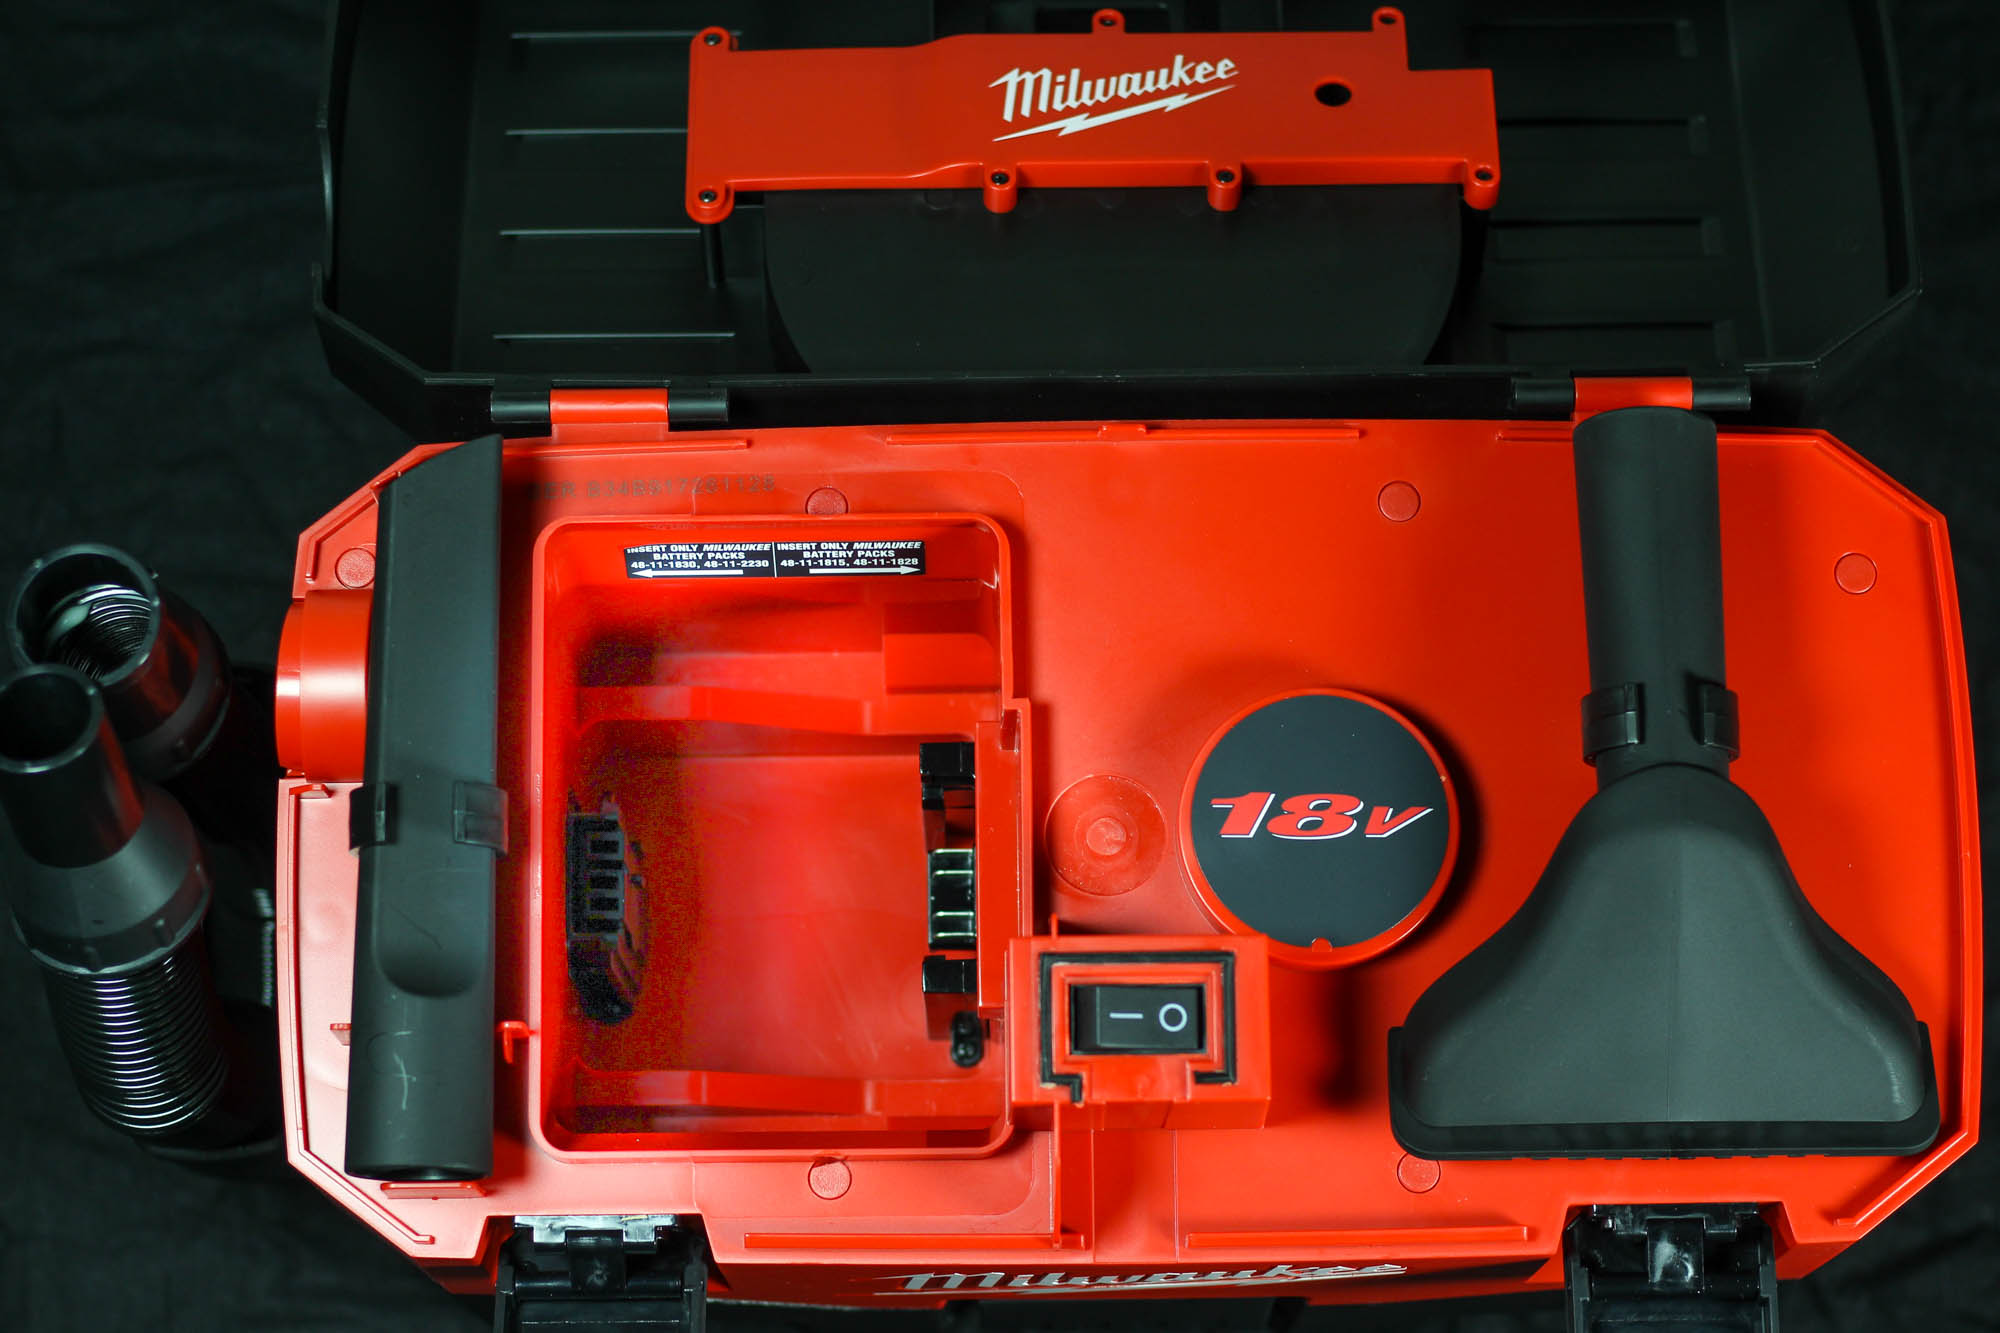 Milwaukee Wet Dry Shop Vacuum is the best cordless industrial and home use shop vac